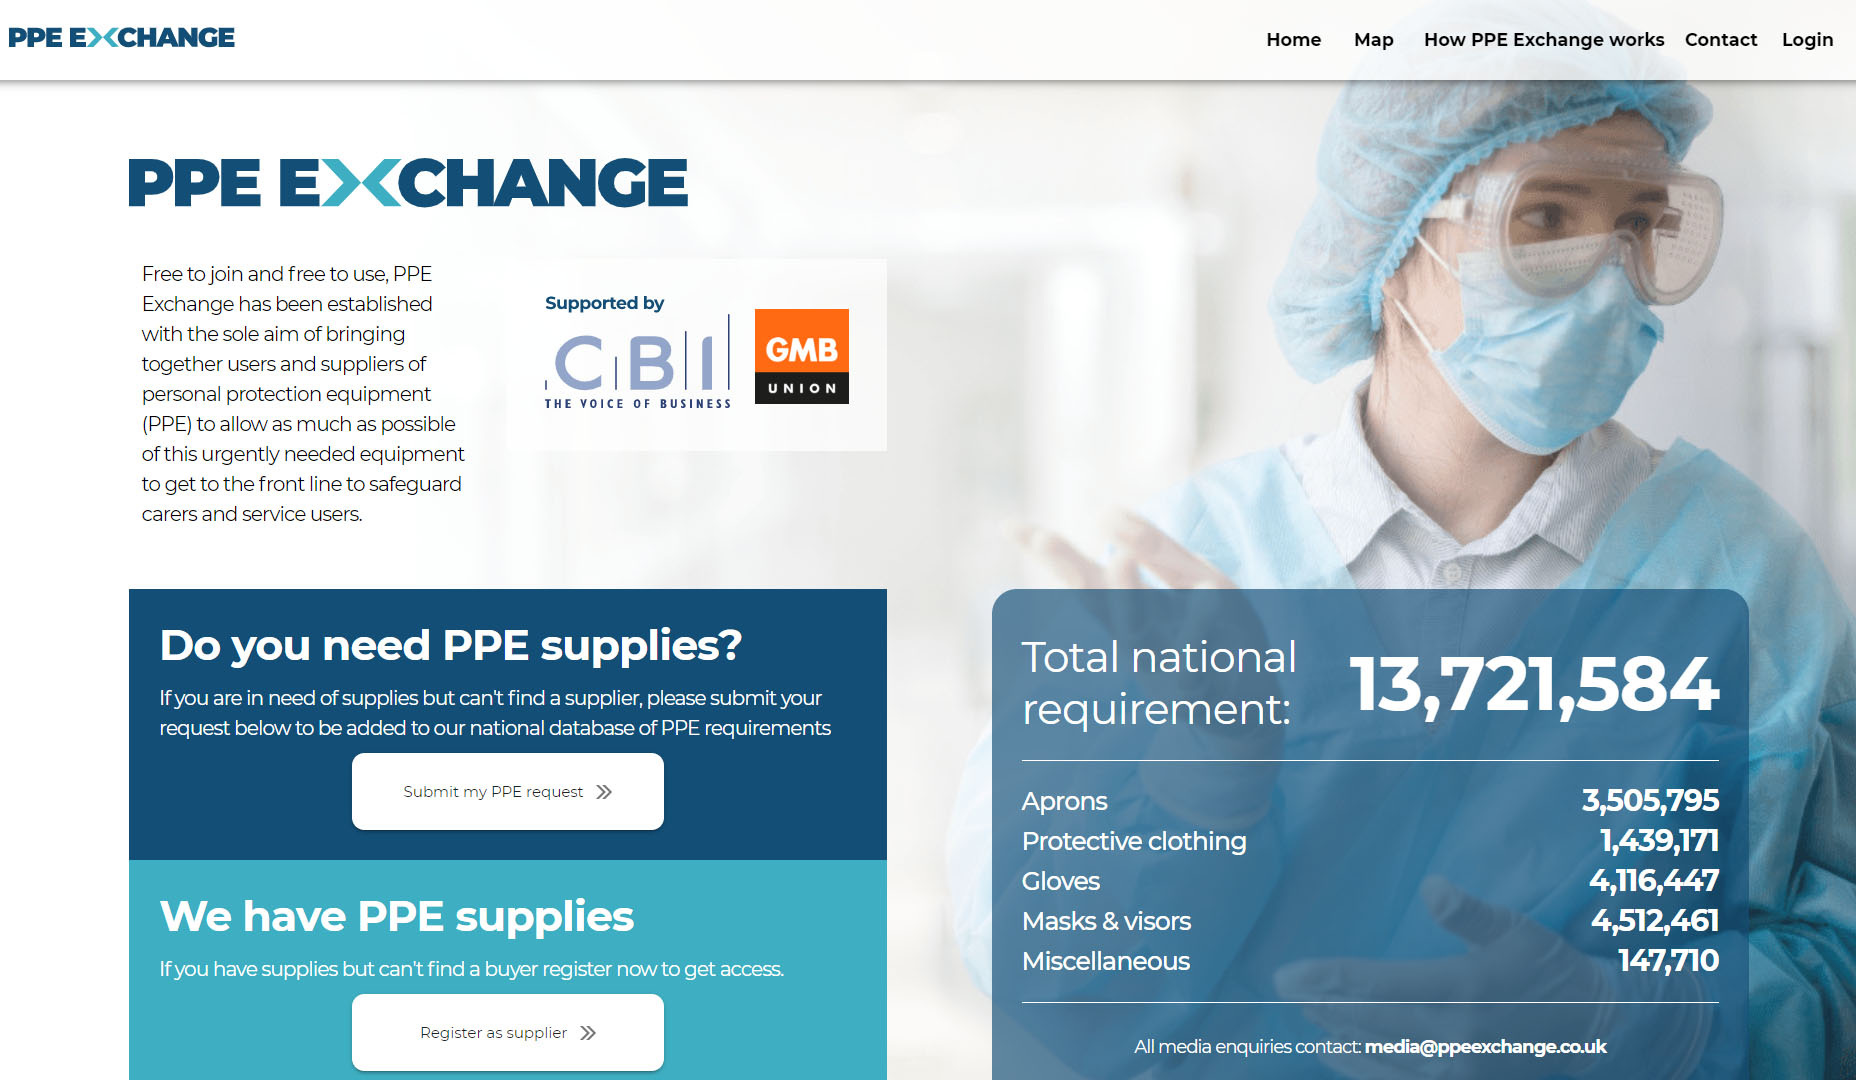 PPE exchange